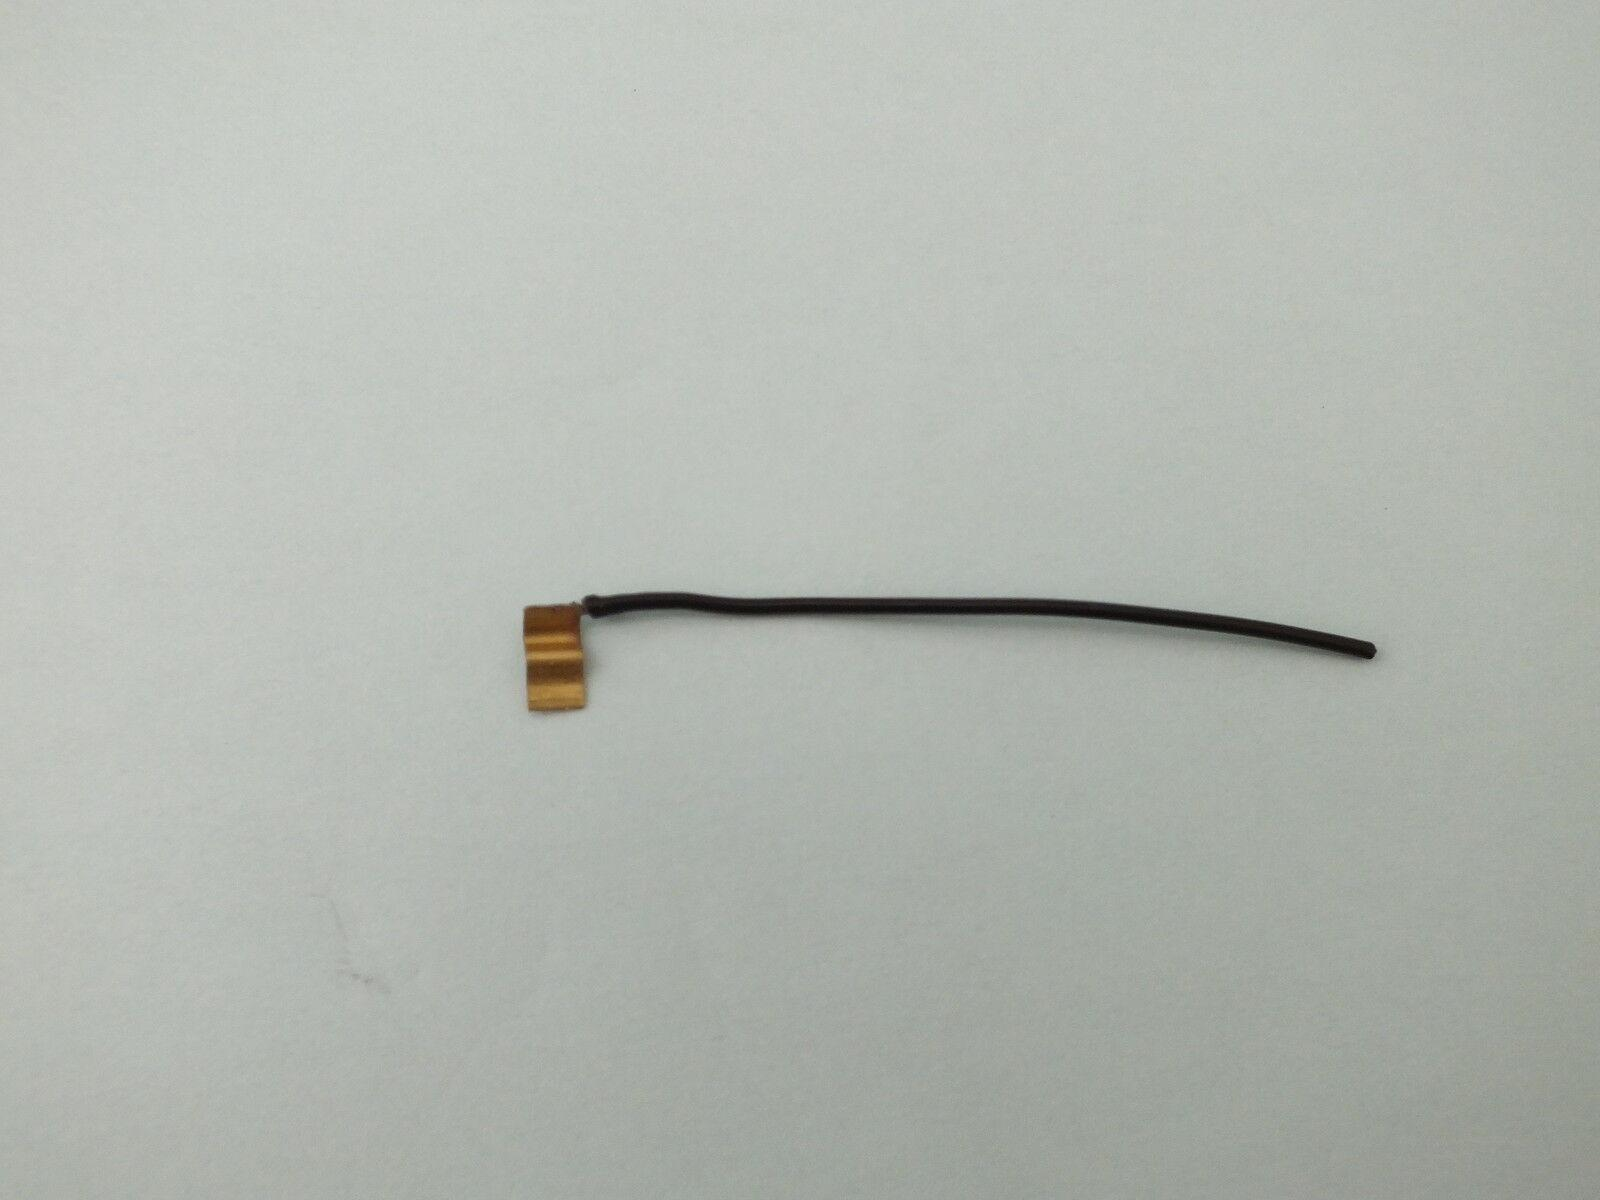 X298  # hornby triang brush clip and lead     A3C